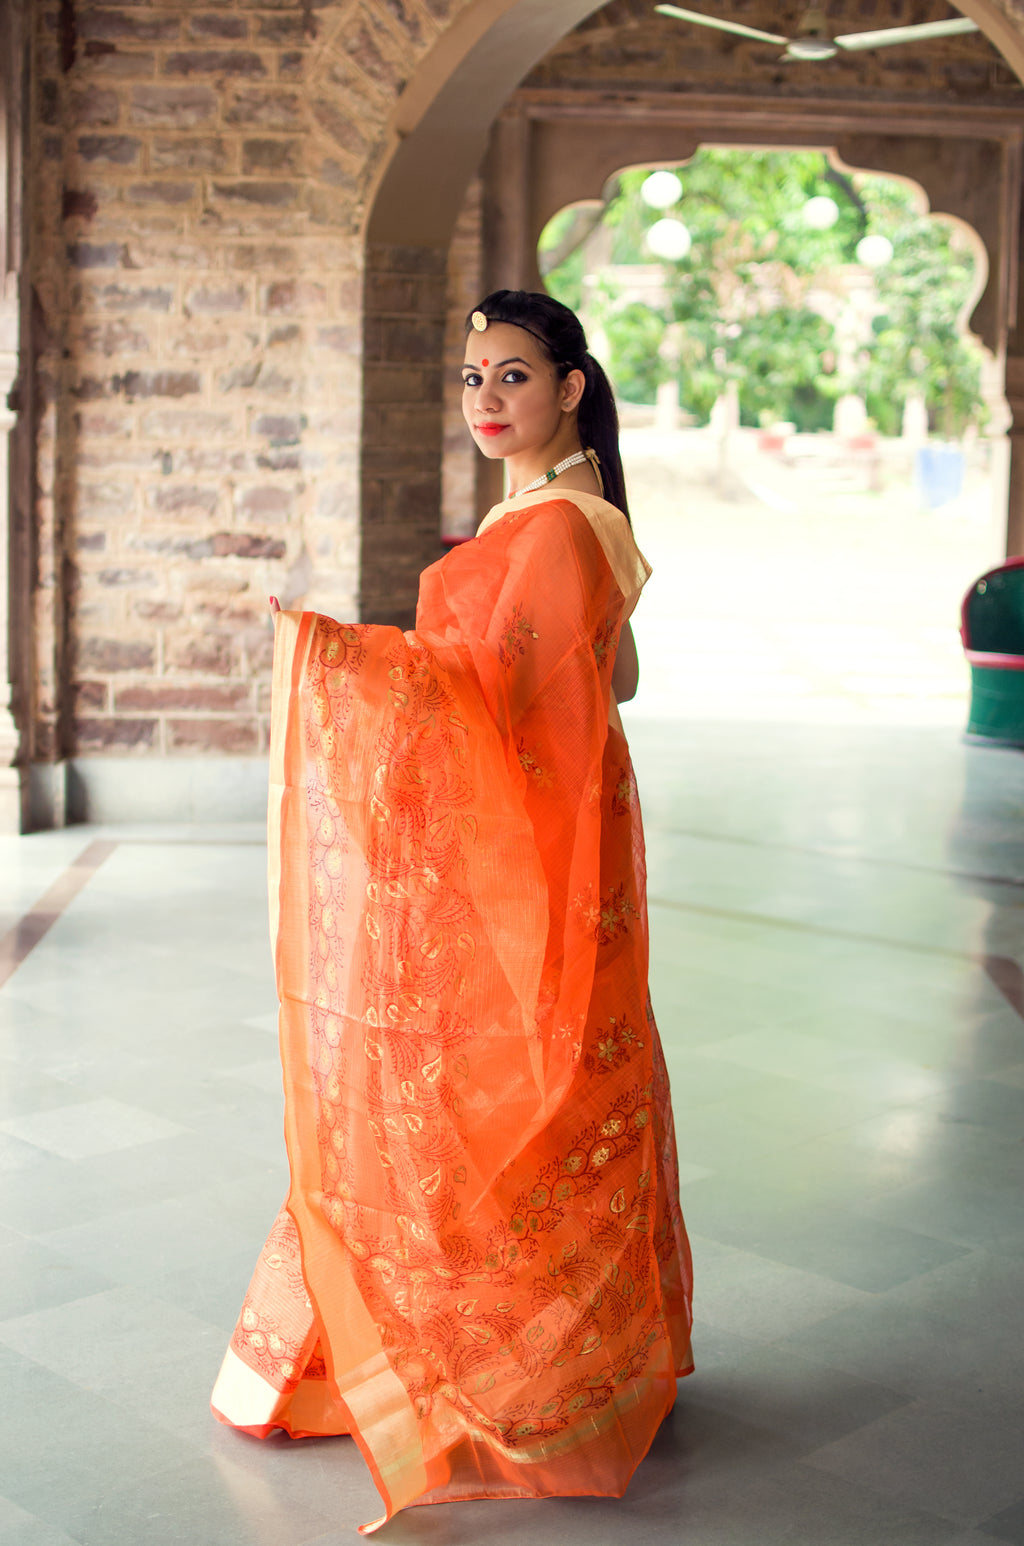 Aachho-Saree-Orange Gold Patti Hand Block Zari Doriya Saree-2